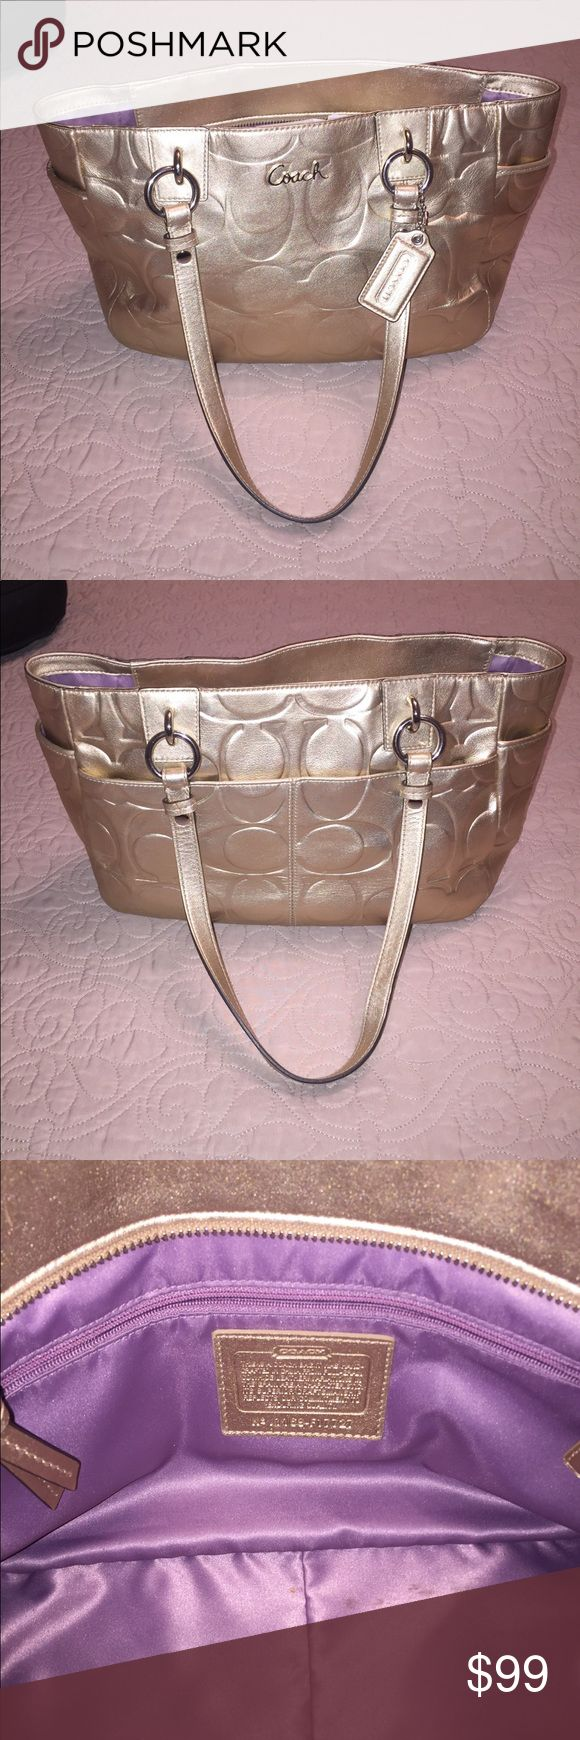 Coach purse Coach purse 8 wide 11 height. Very clean smoke free home . Too small used twice Coach Bags Satchels